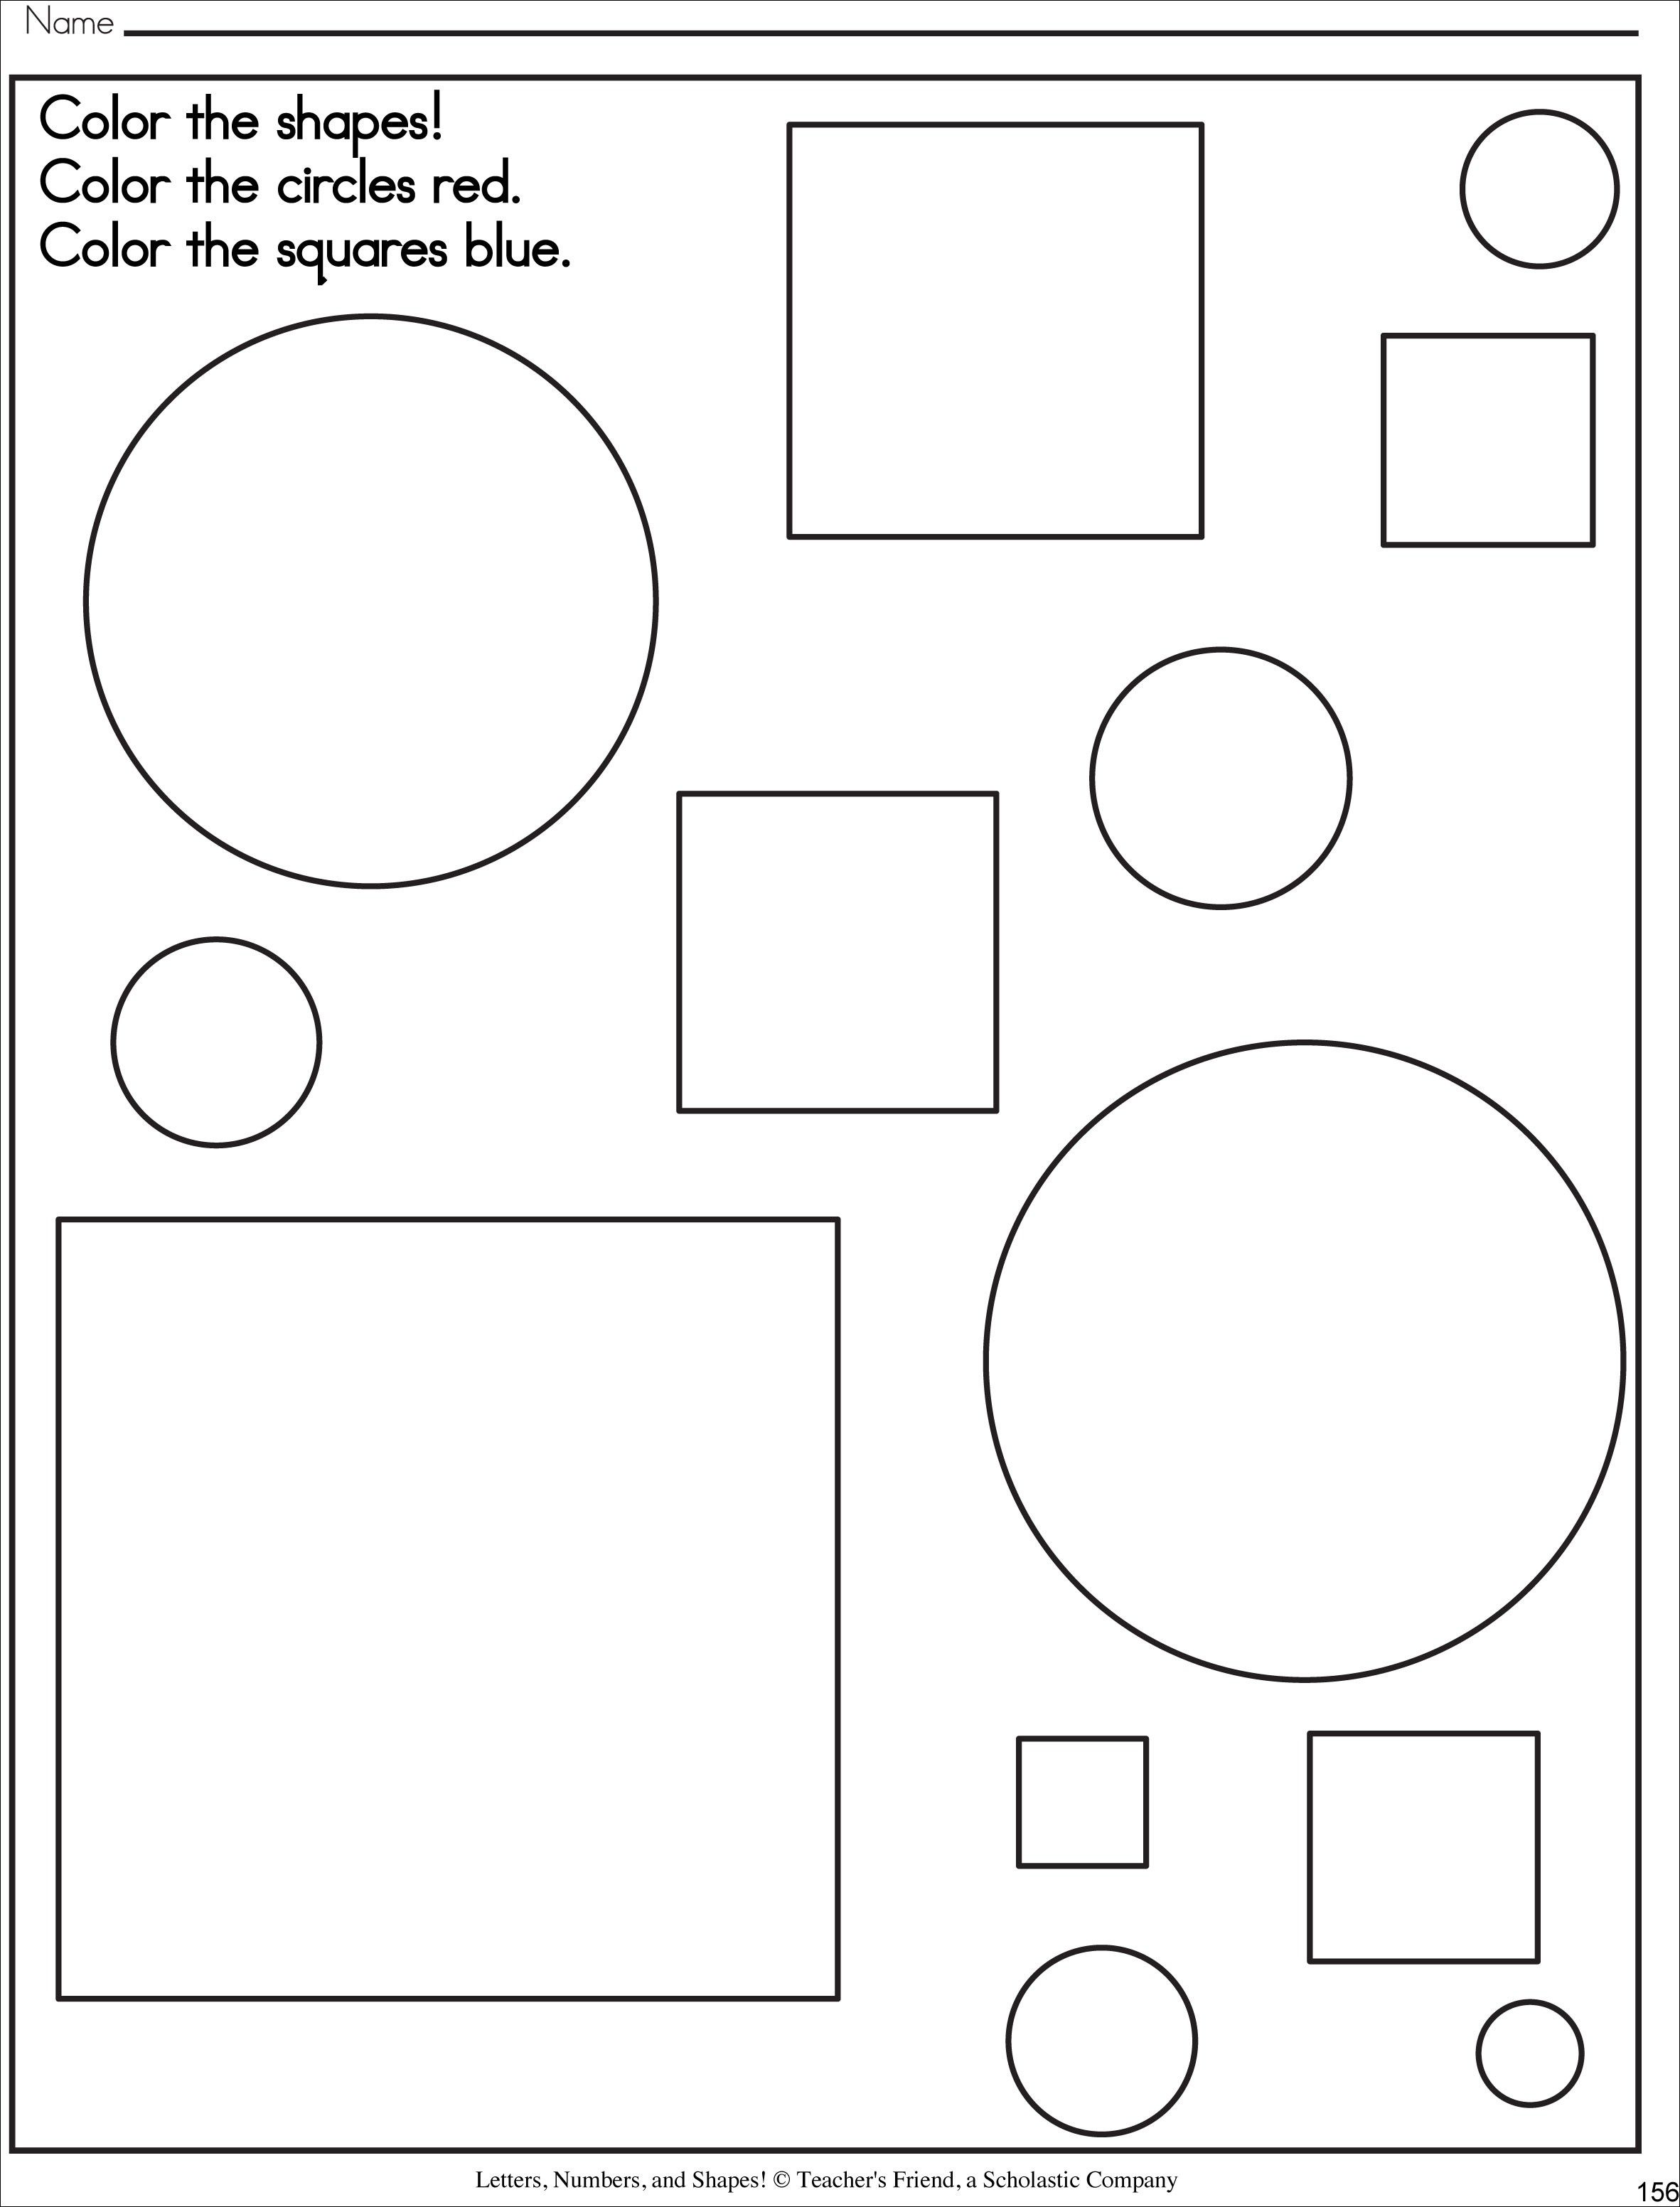 Shapes For Coloring Shapes Worksheets Coloring Worksheets For Kindergarten Shapes Worksheet Kindergarten [ 3104 x 2363 Pixel ]